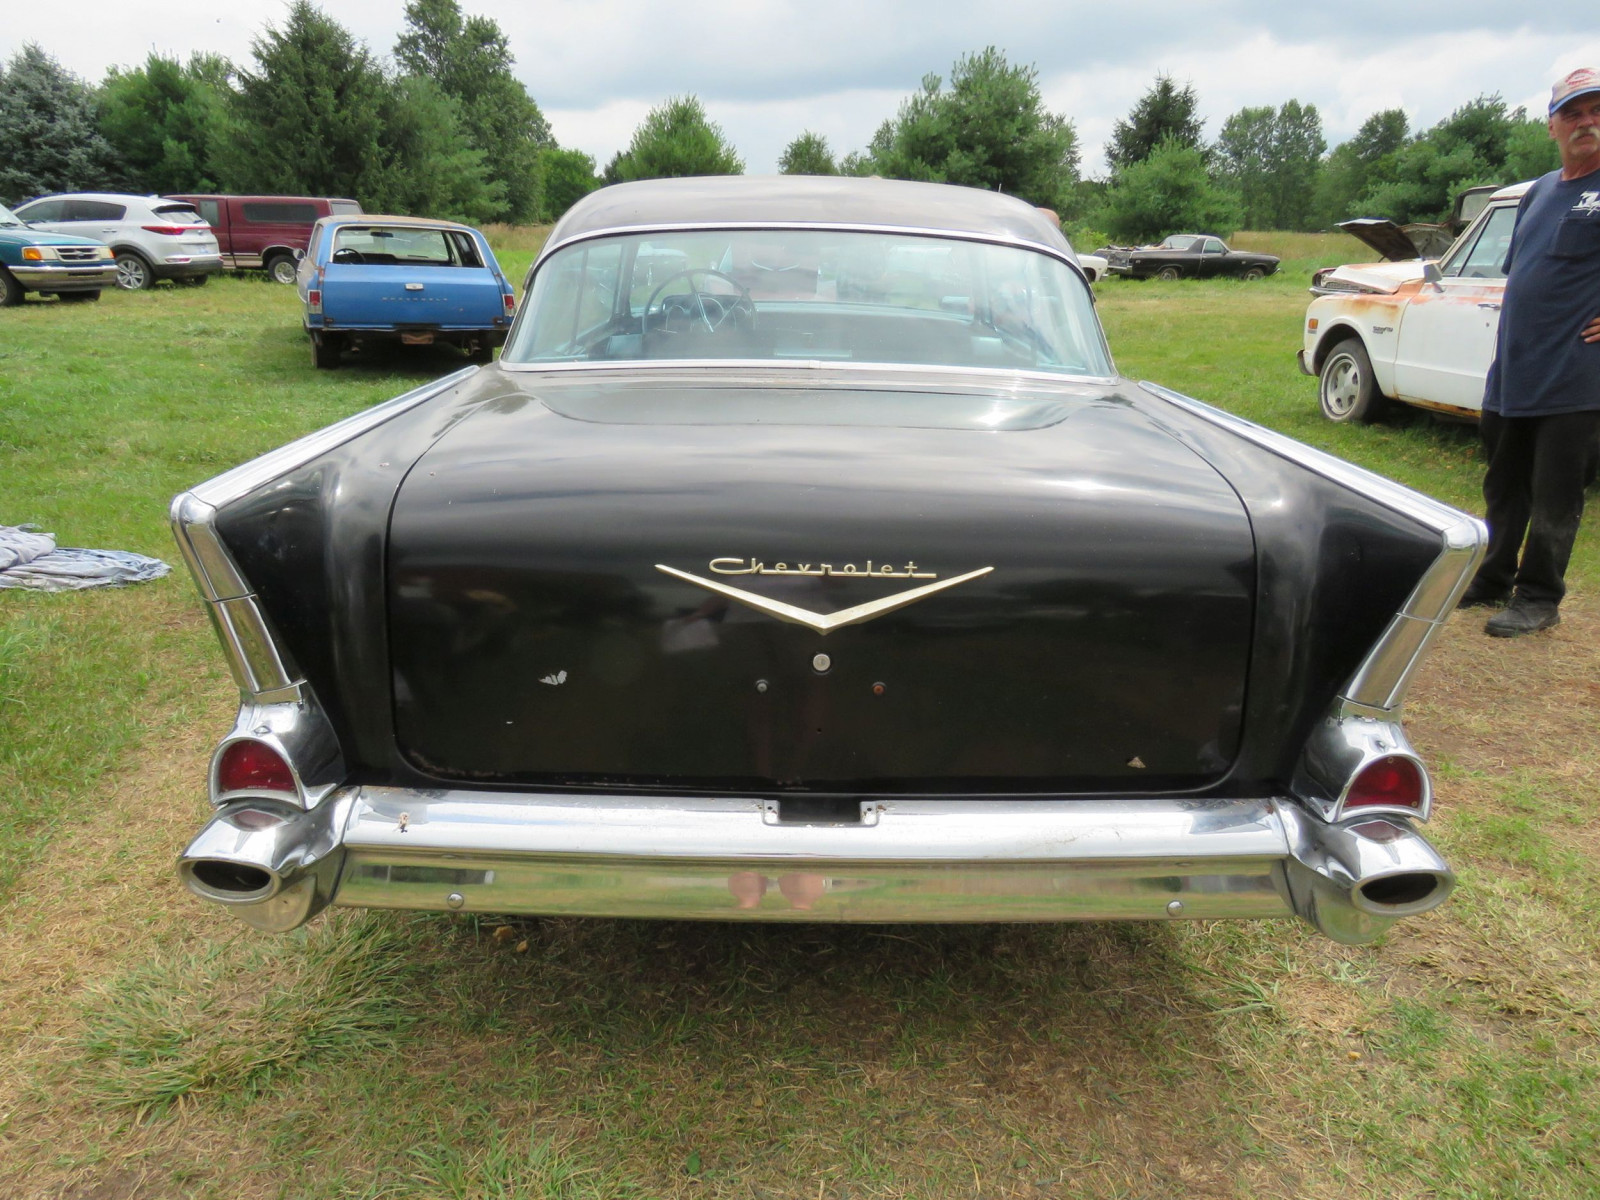 1957 Chevrolet Belair Fuel Injected 2dr HT - Image 6